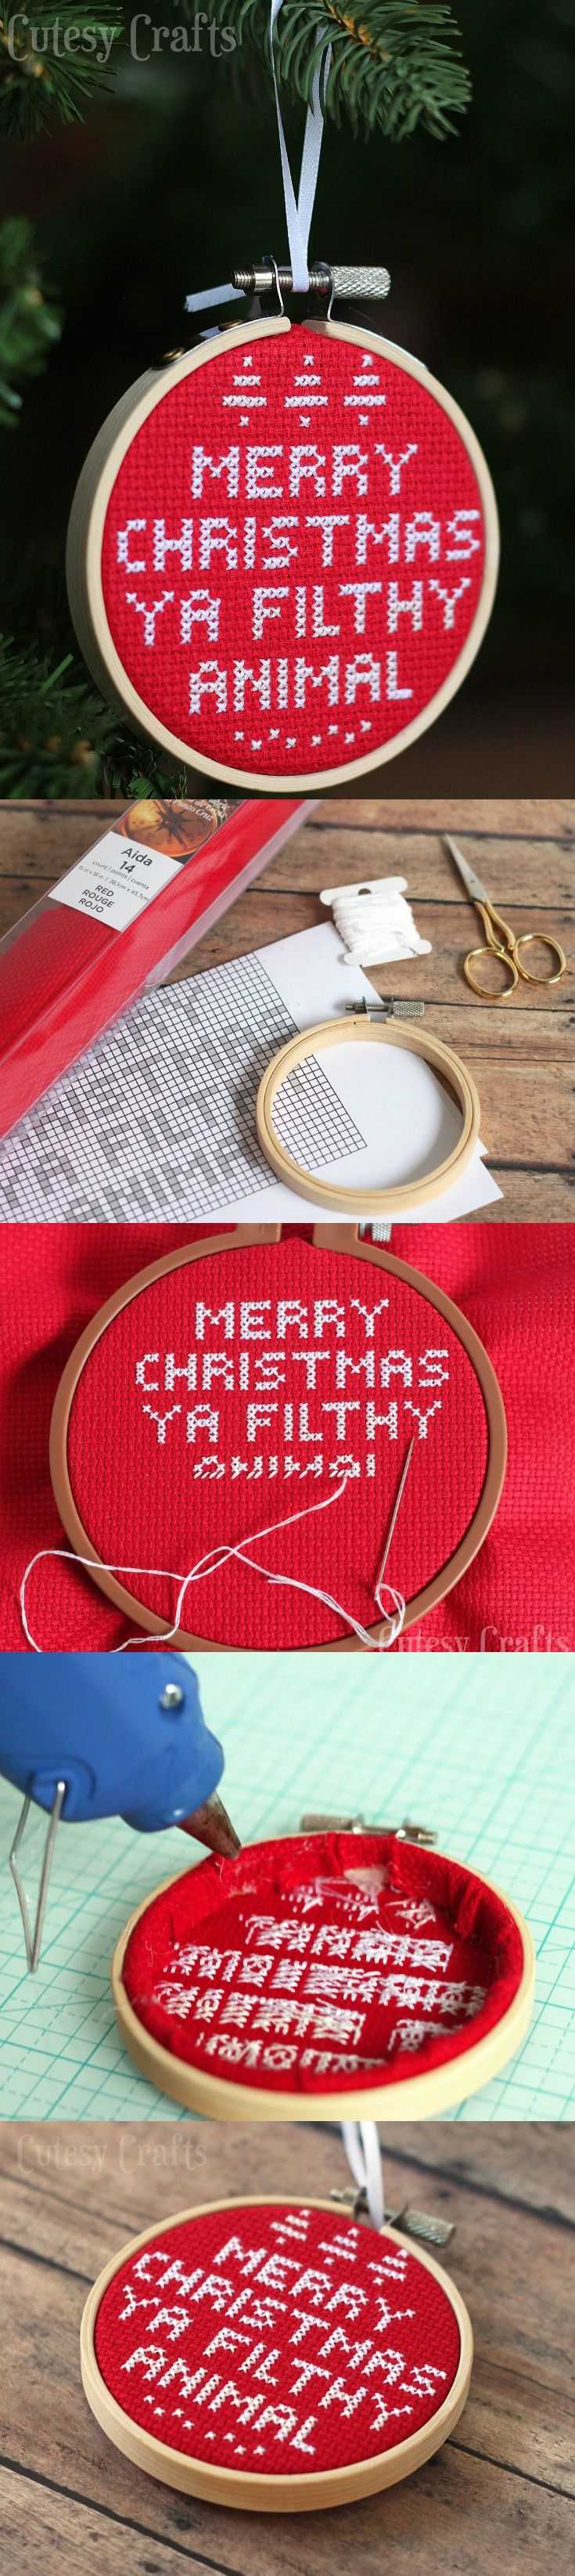 Are you familiar with Home Alone? Have fun stitching, and Merry Christmas - ya filthy animal! - I think I need to make my boys do this! Moo-ha-ha!